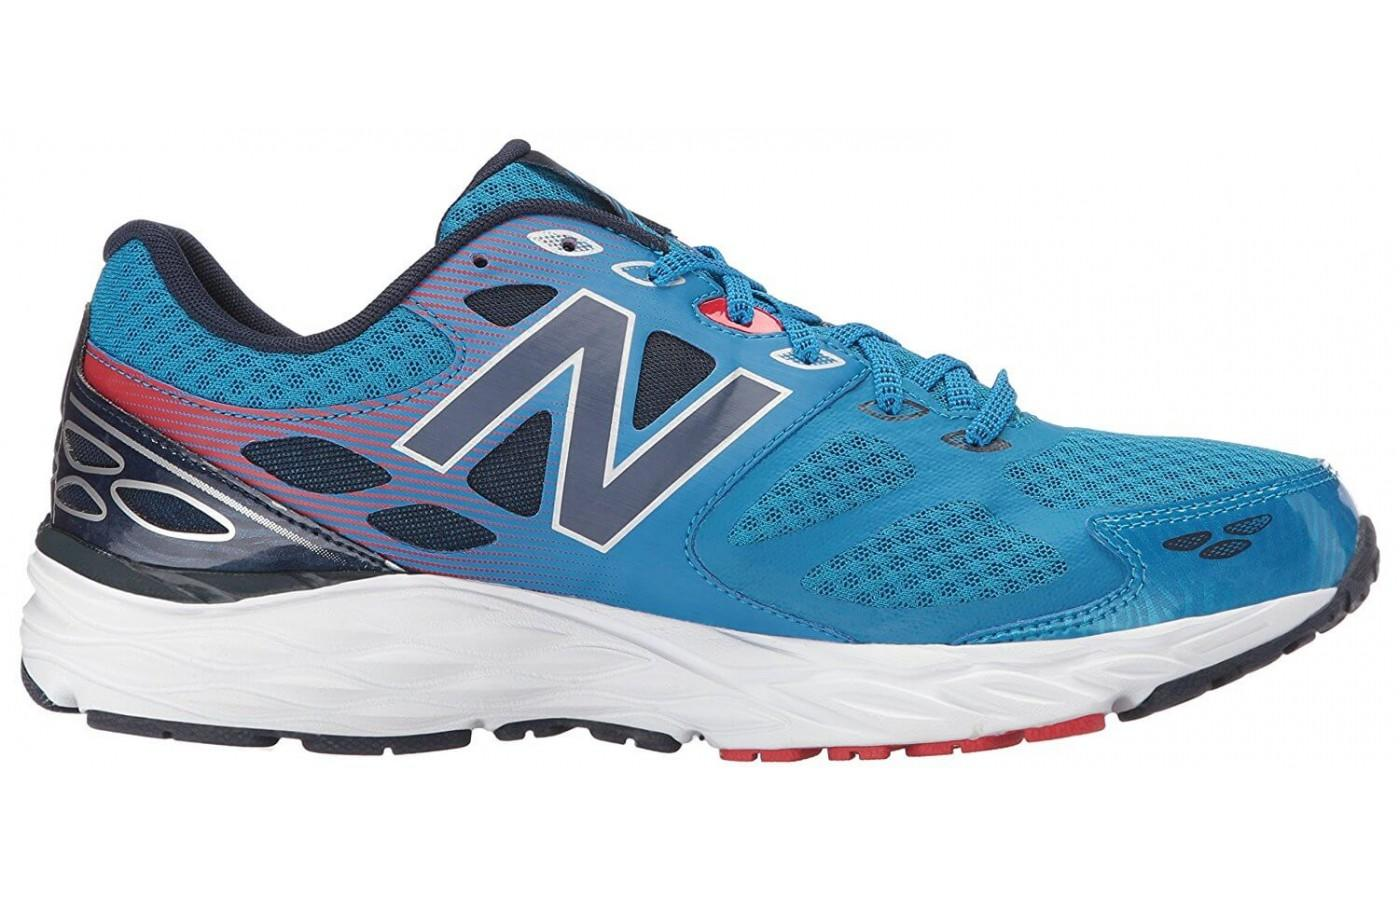 the New Balance 680 v3 is a stylish, colorful trainer